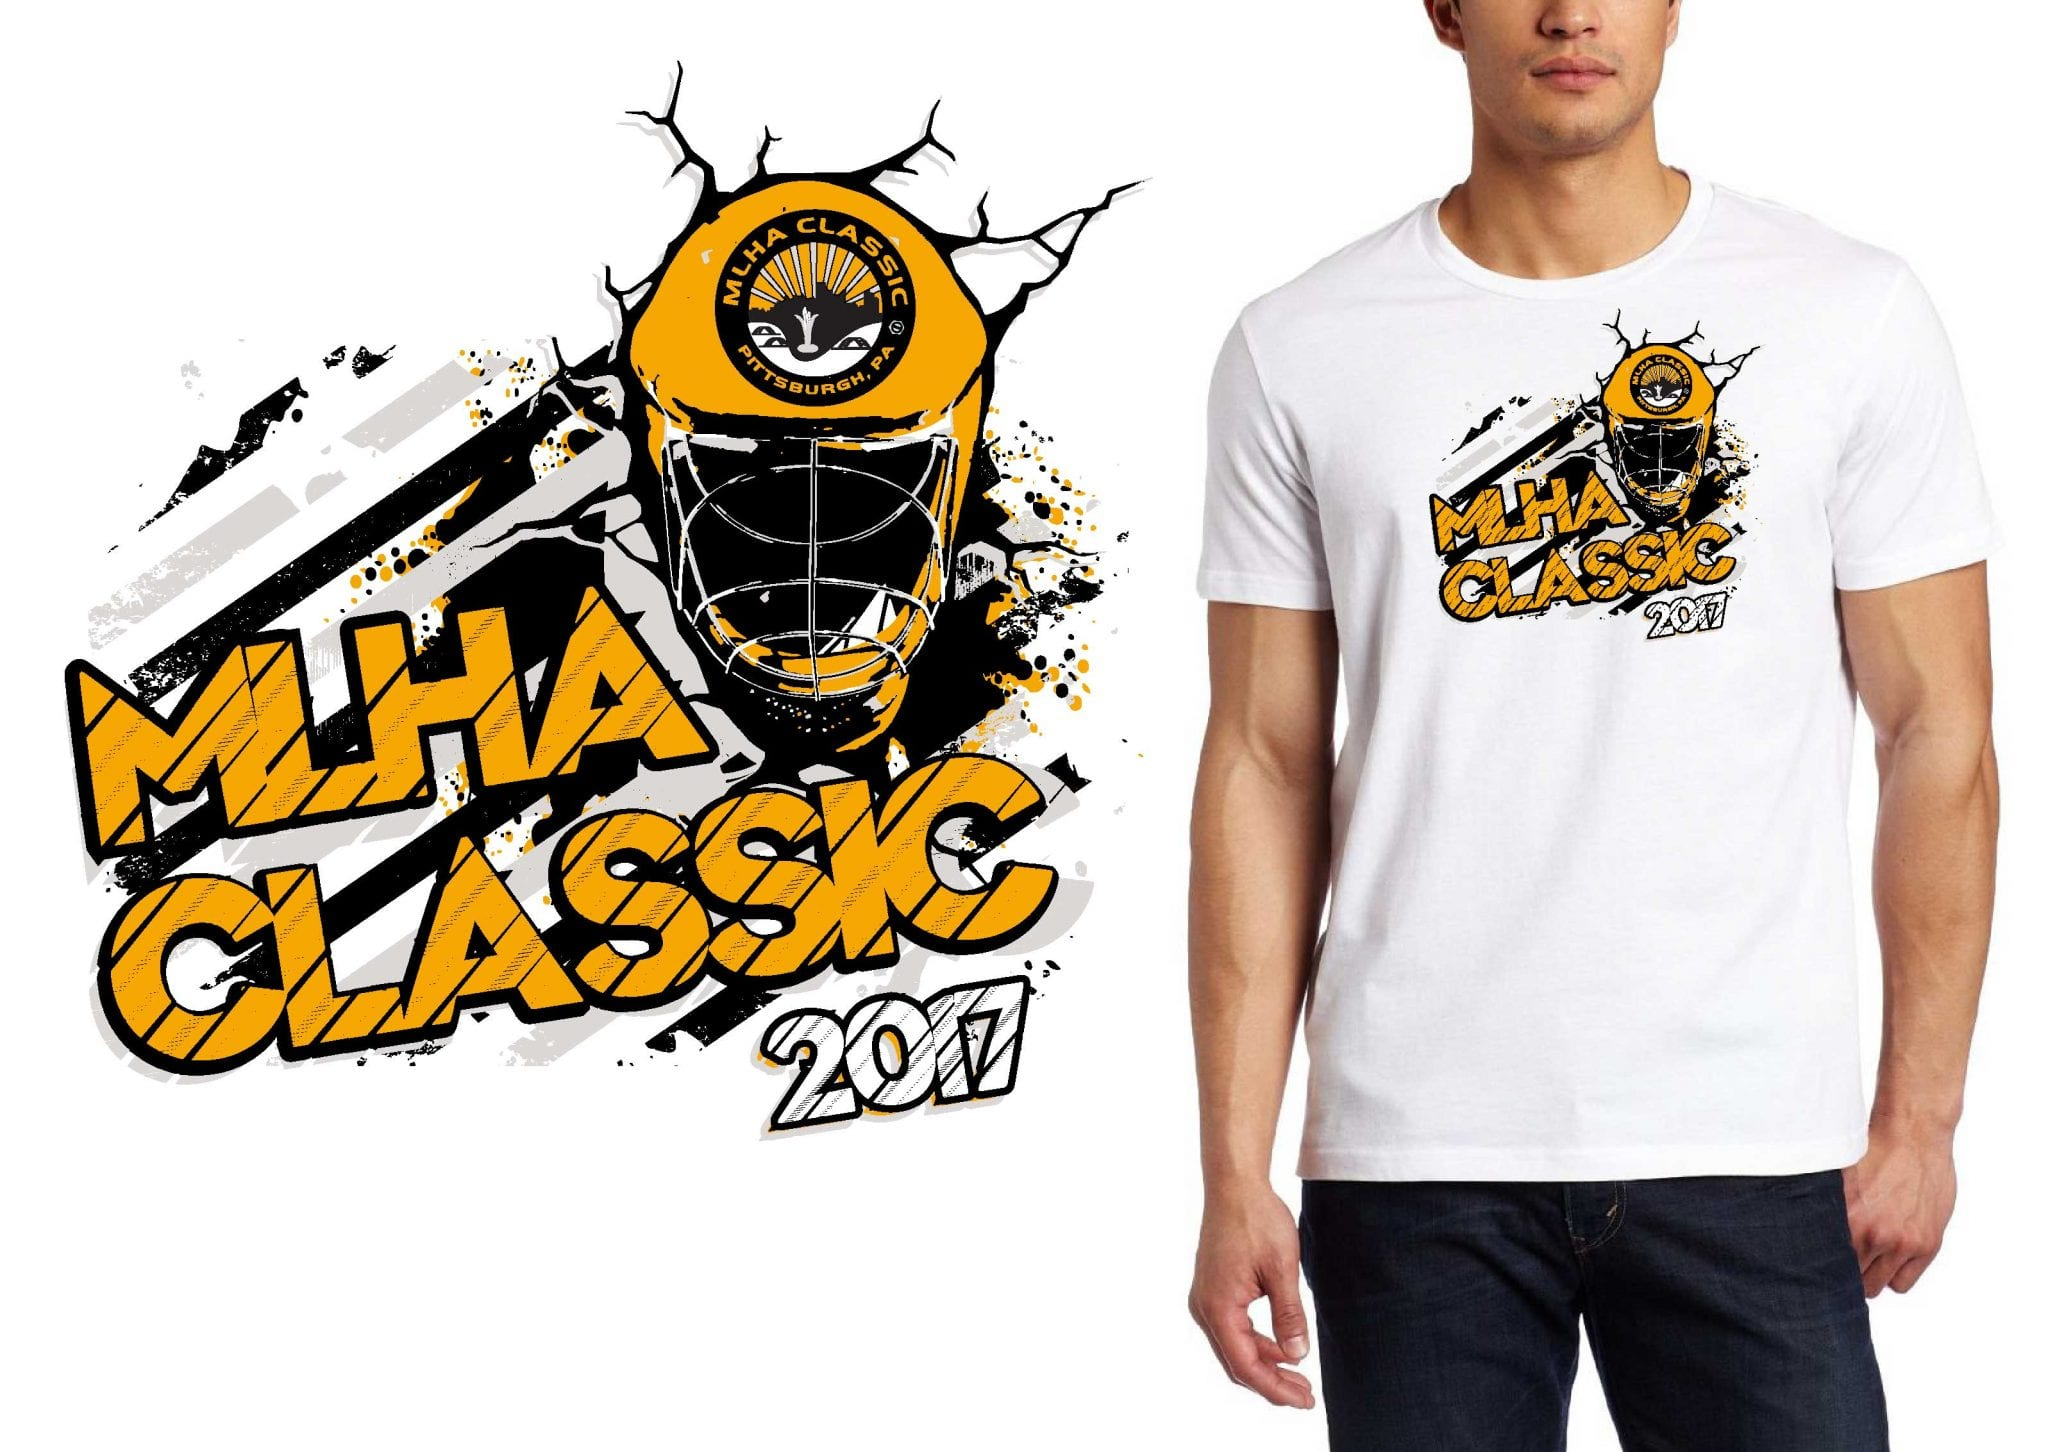 2017 MLHA HOCKEY MD vector logo design for t-shirt UrArtStudio